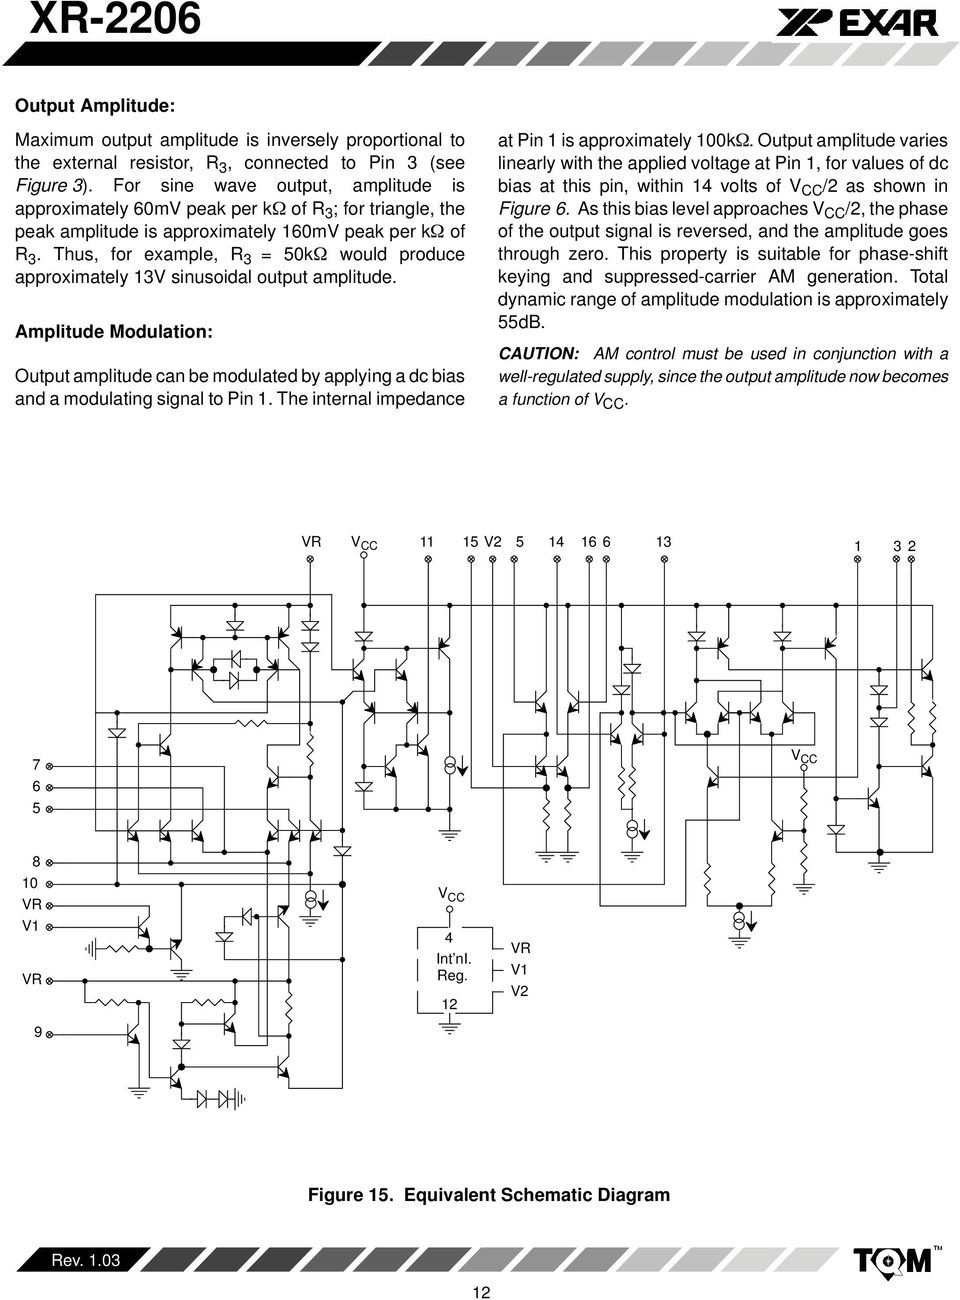 Xr 2206 Monolithic Function Generator Pdf Fm Modulation And Demodulation Circuit Diagram Pictures To Pin On Thus For Example R 3 0k Would Produce Approximately 3v Sinusoidal Output Amplitude